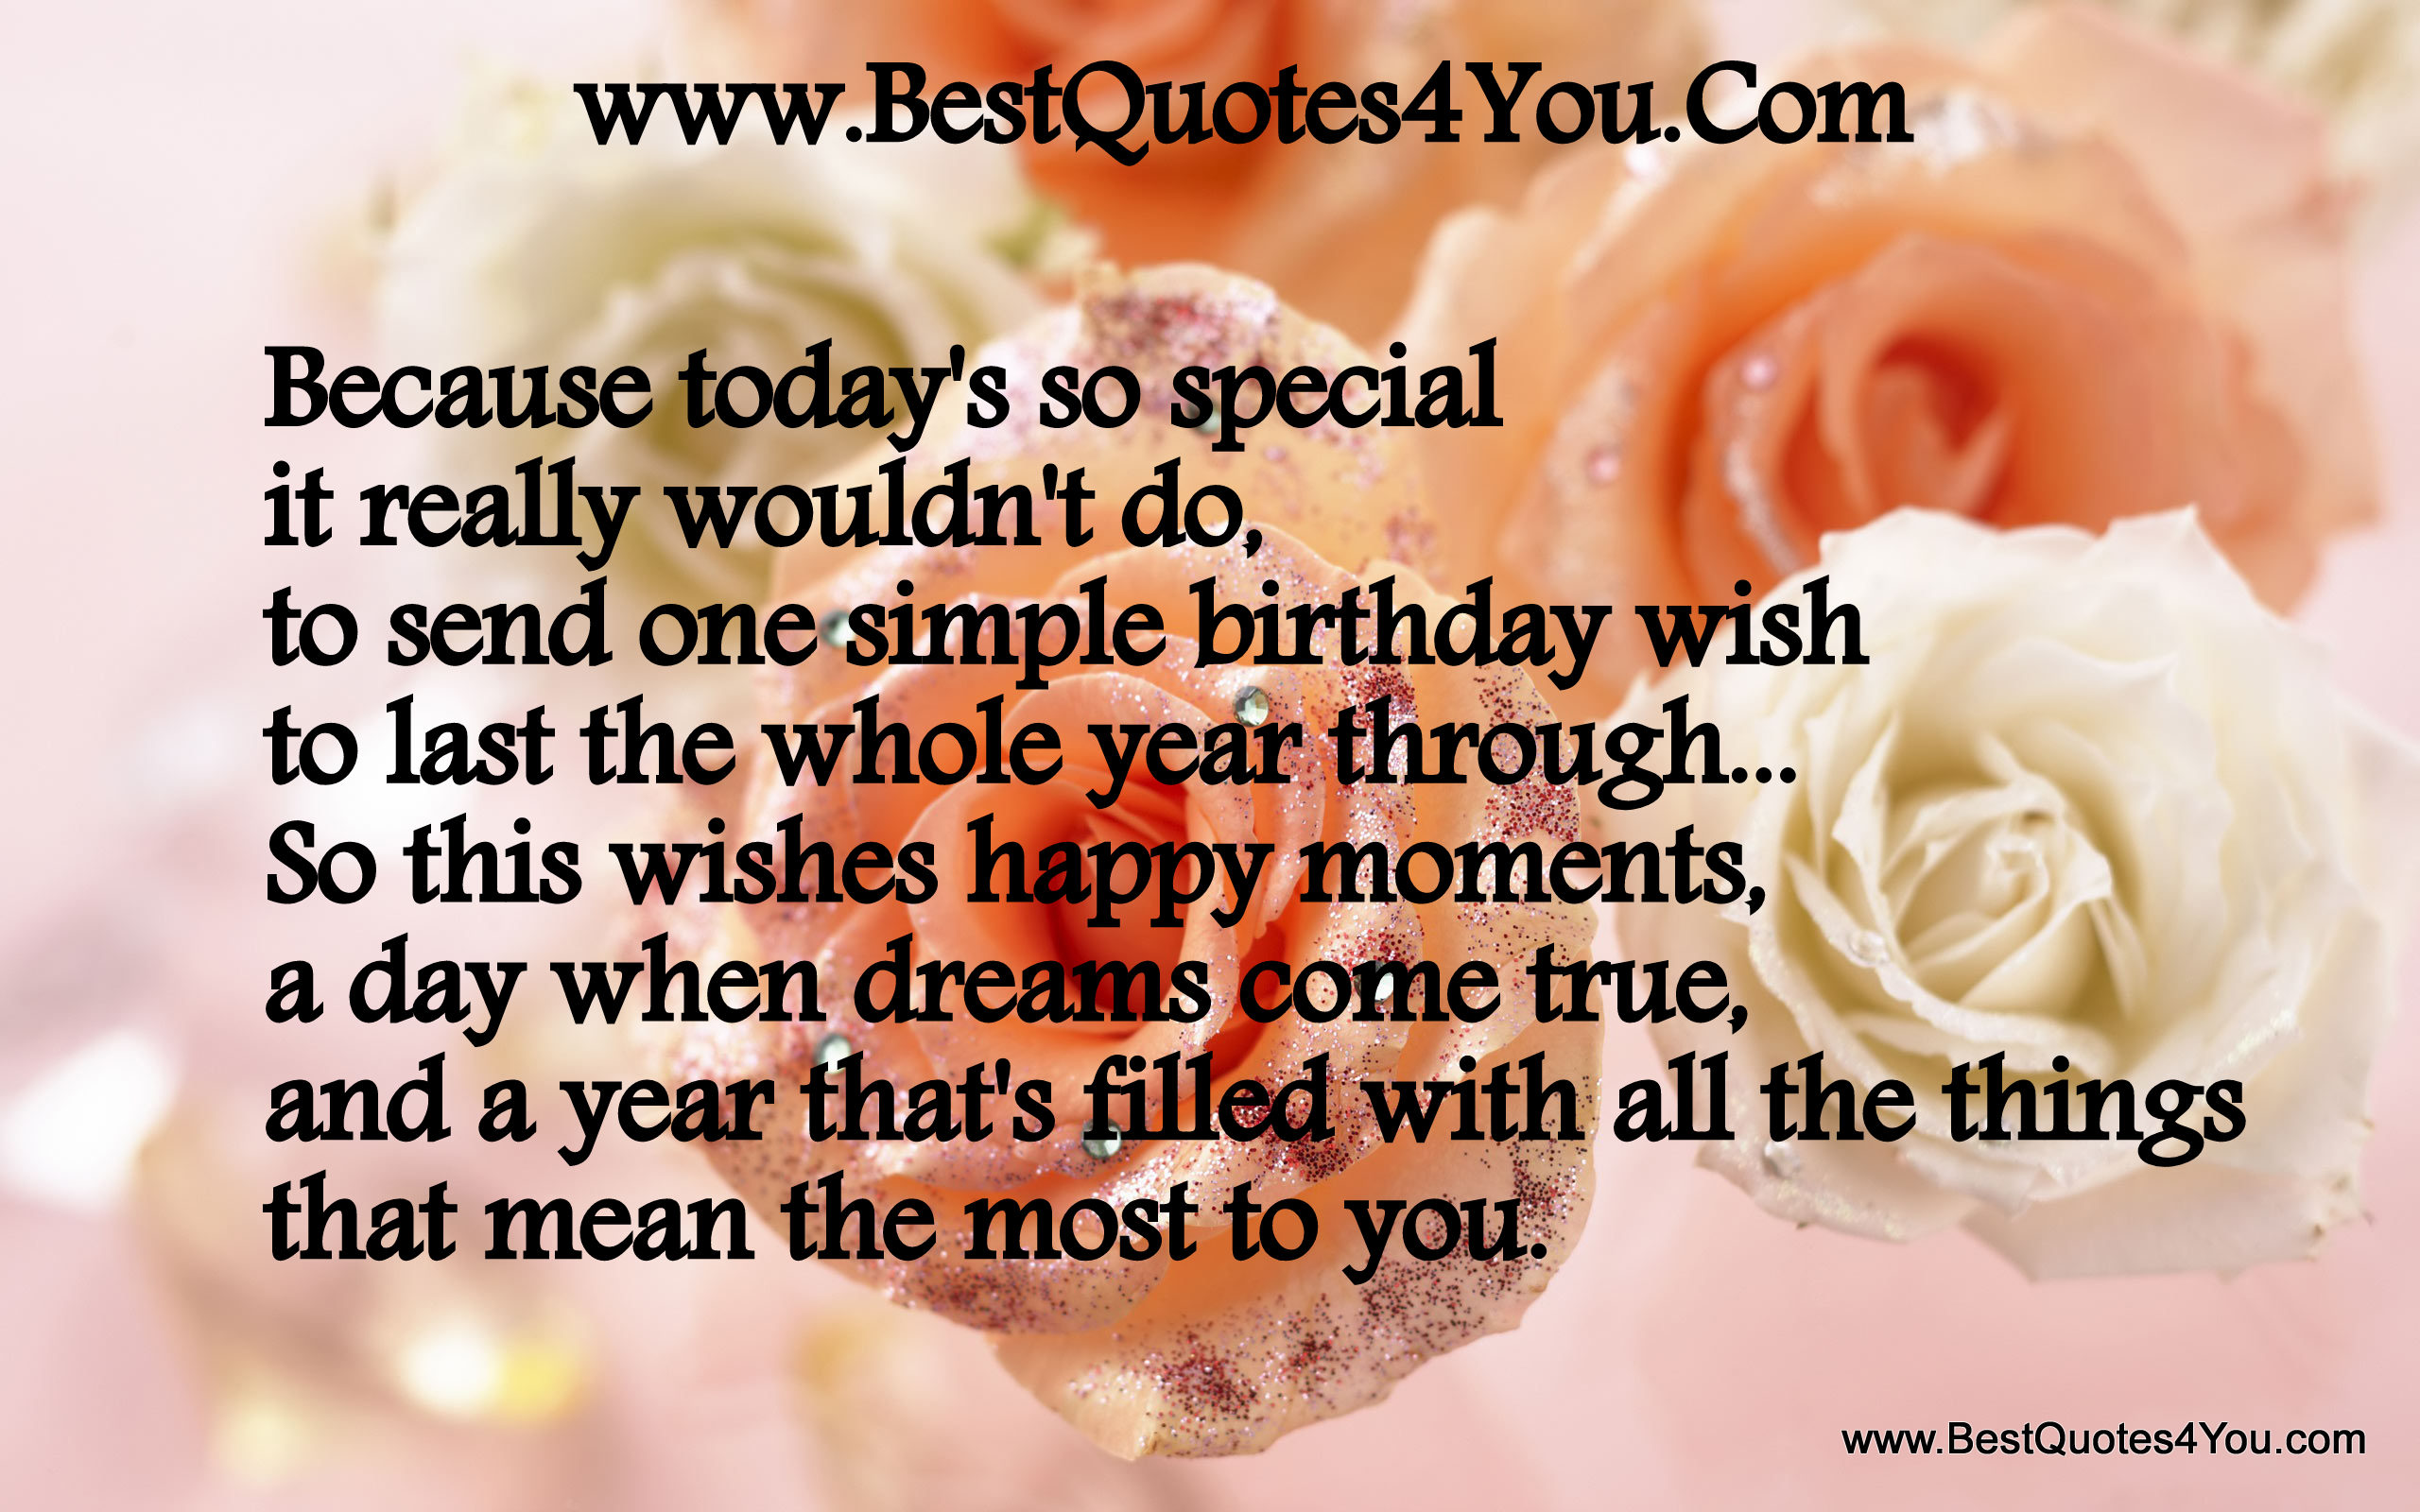 special birthday images with quotes ; 231ad6637f6a9d99444e853b2414e84d